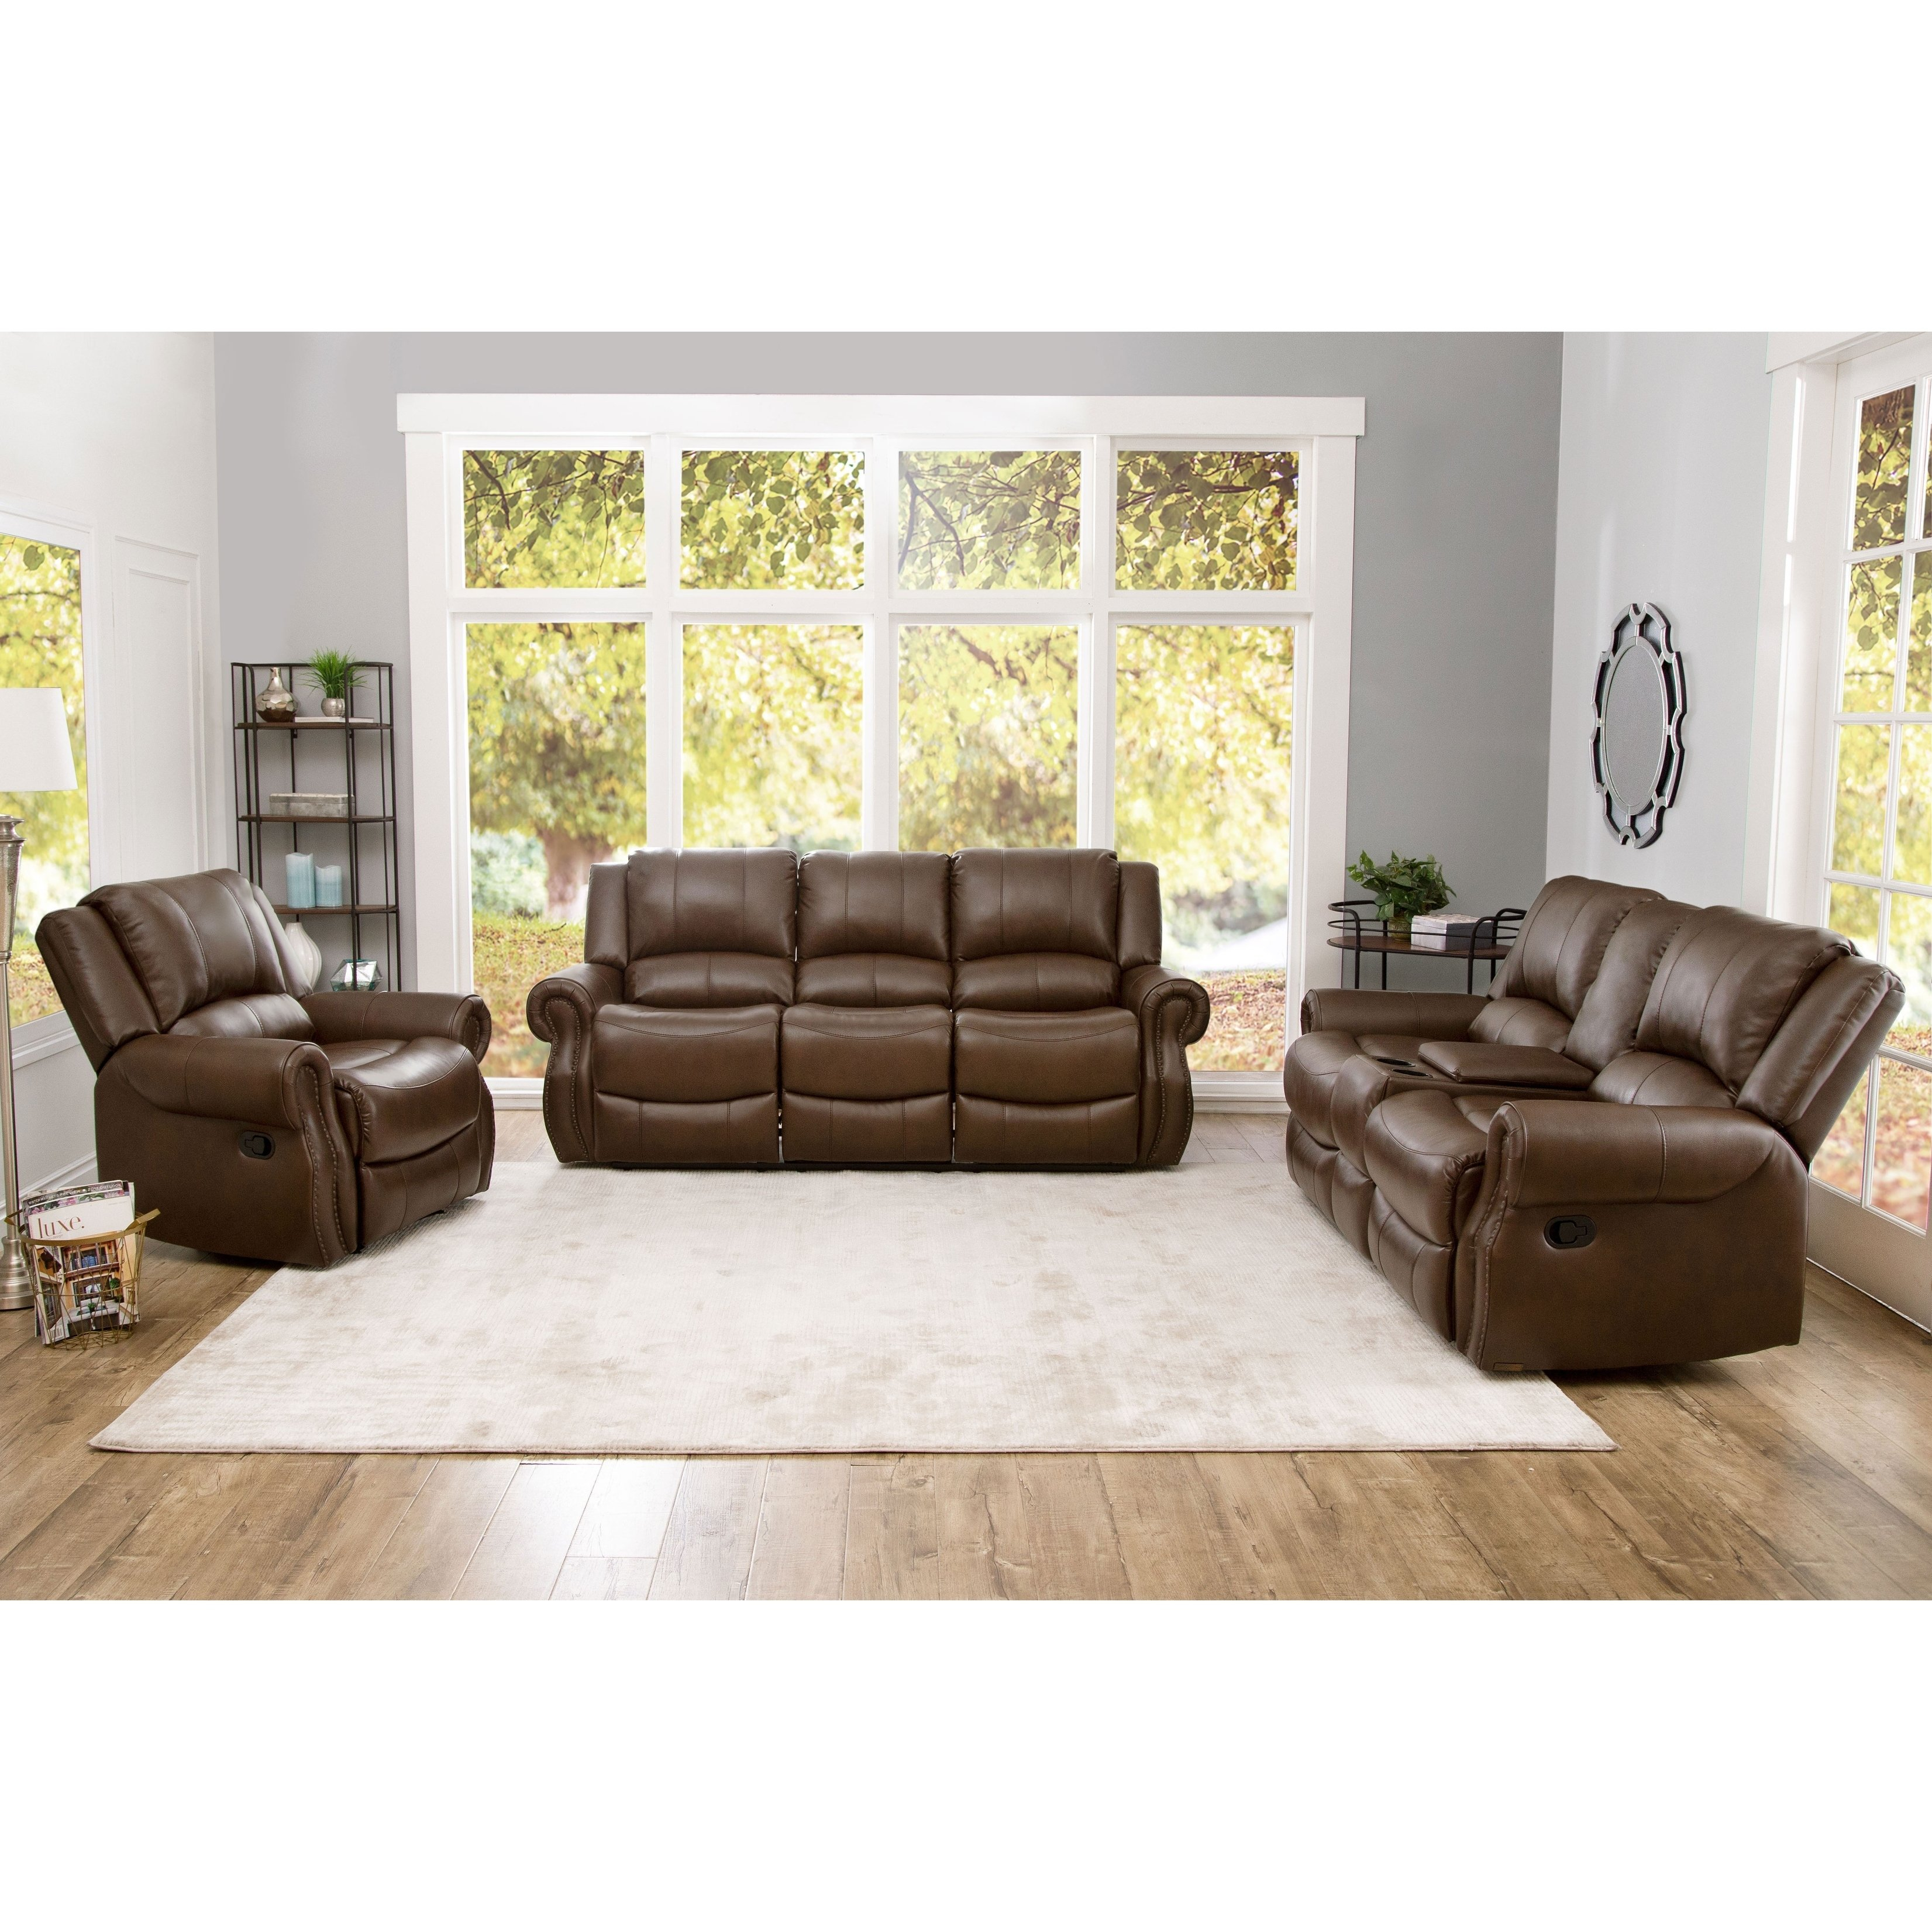 Shop Abson Calabasas Mesa Brown Leather 3 Piece Reclining Living in Leather Living Room Set